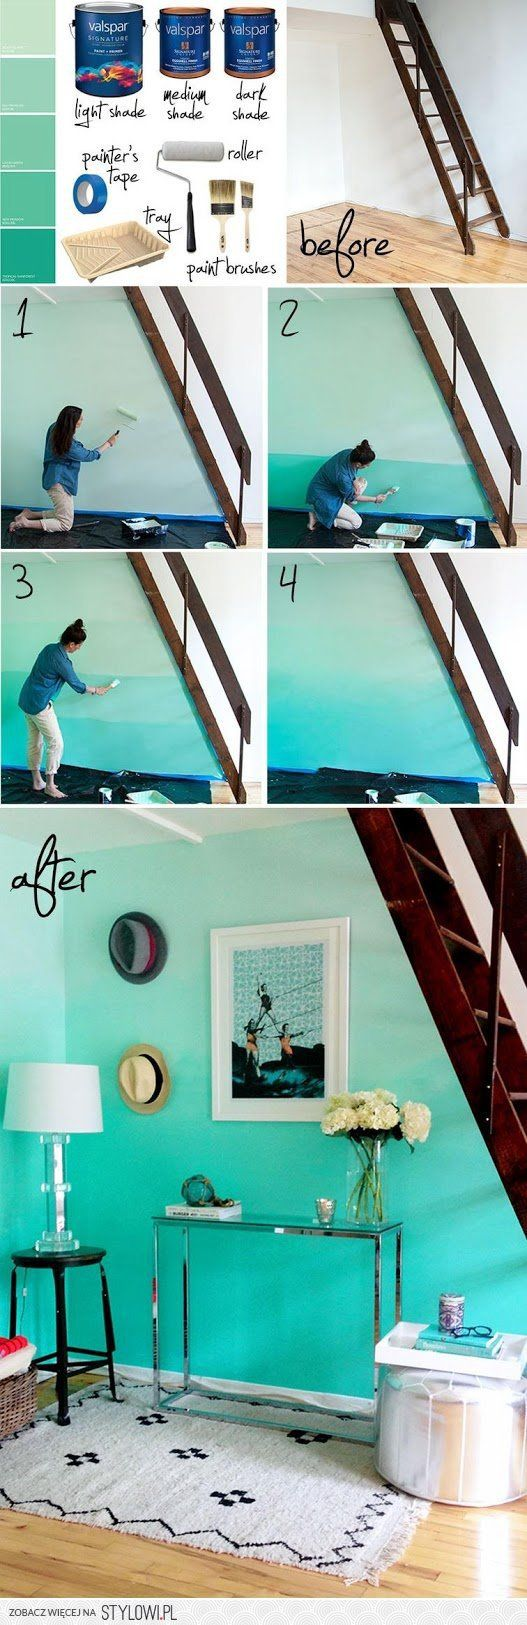 Ombre Walls Painting Techniques Designs And Ideas Ombre - Ombre wall painting technique